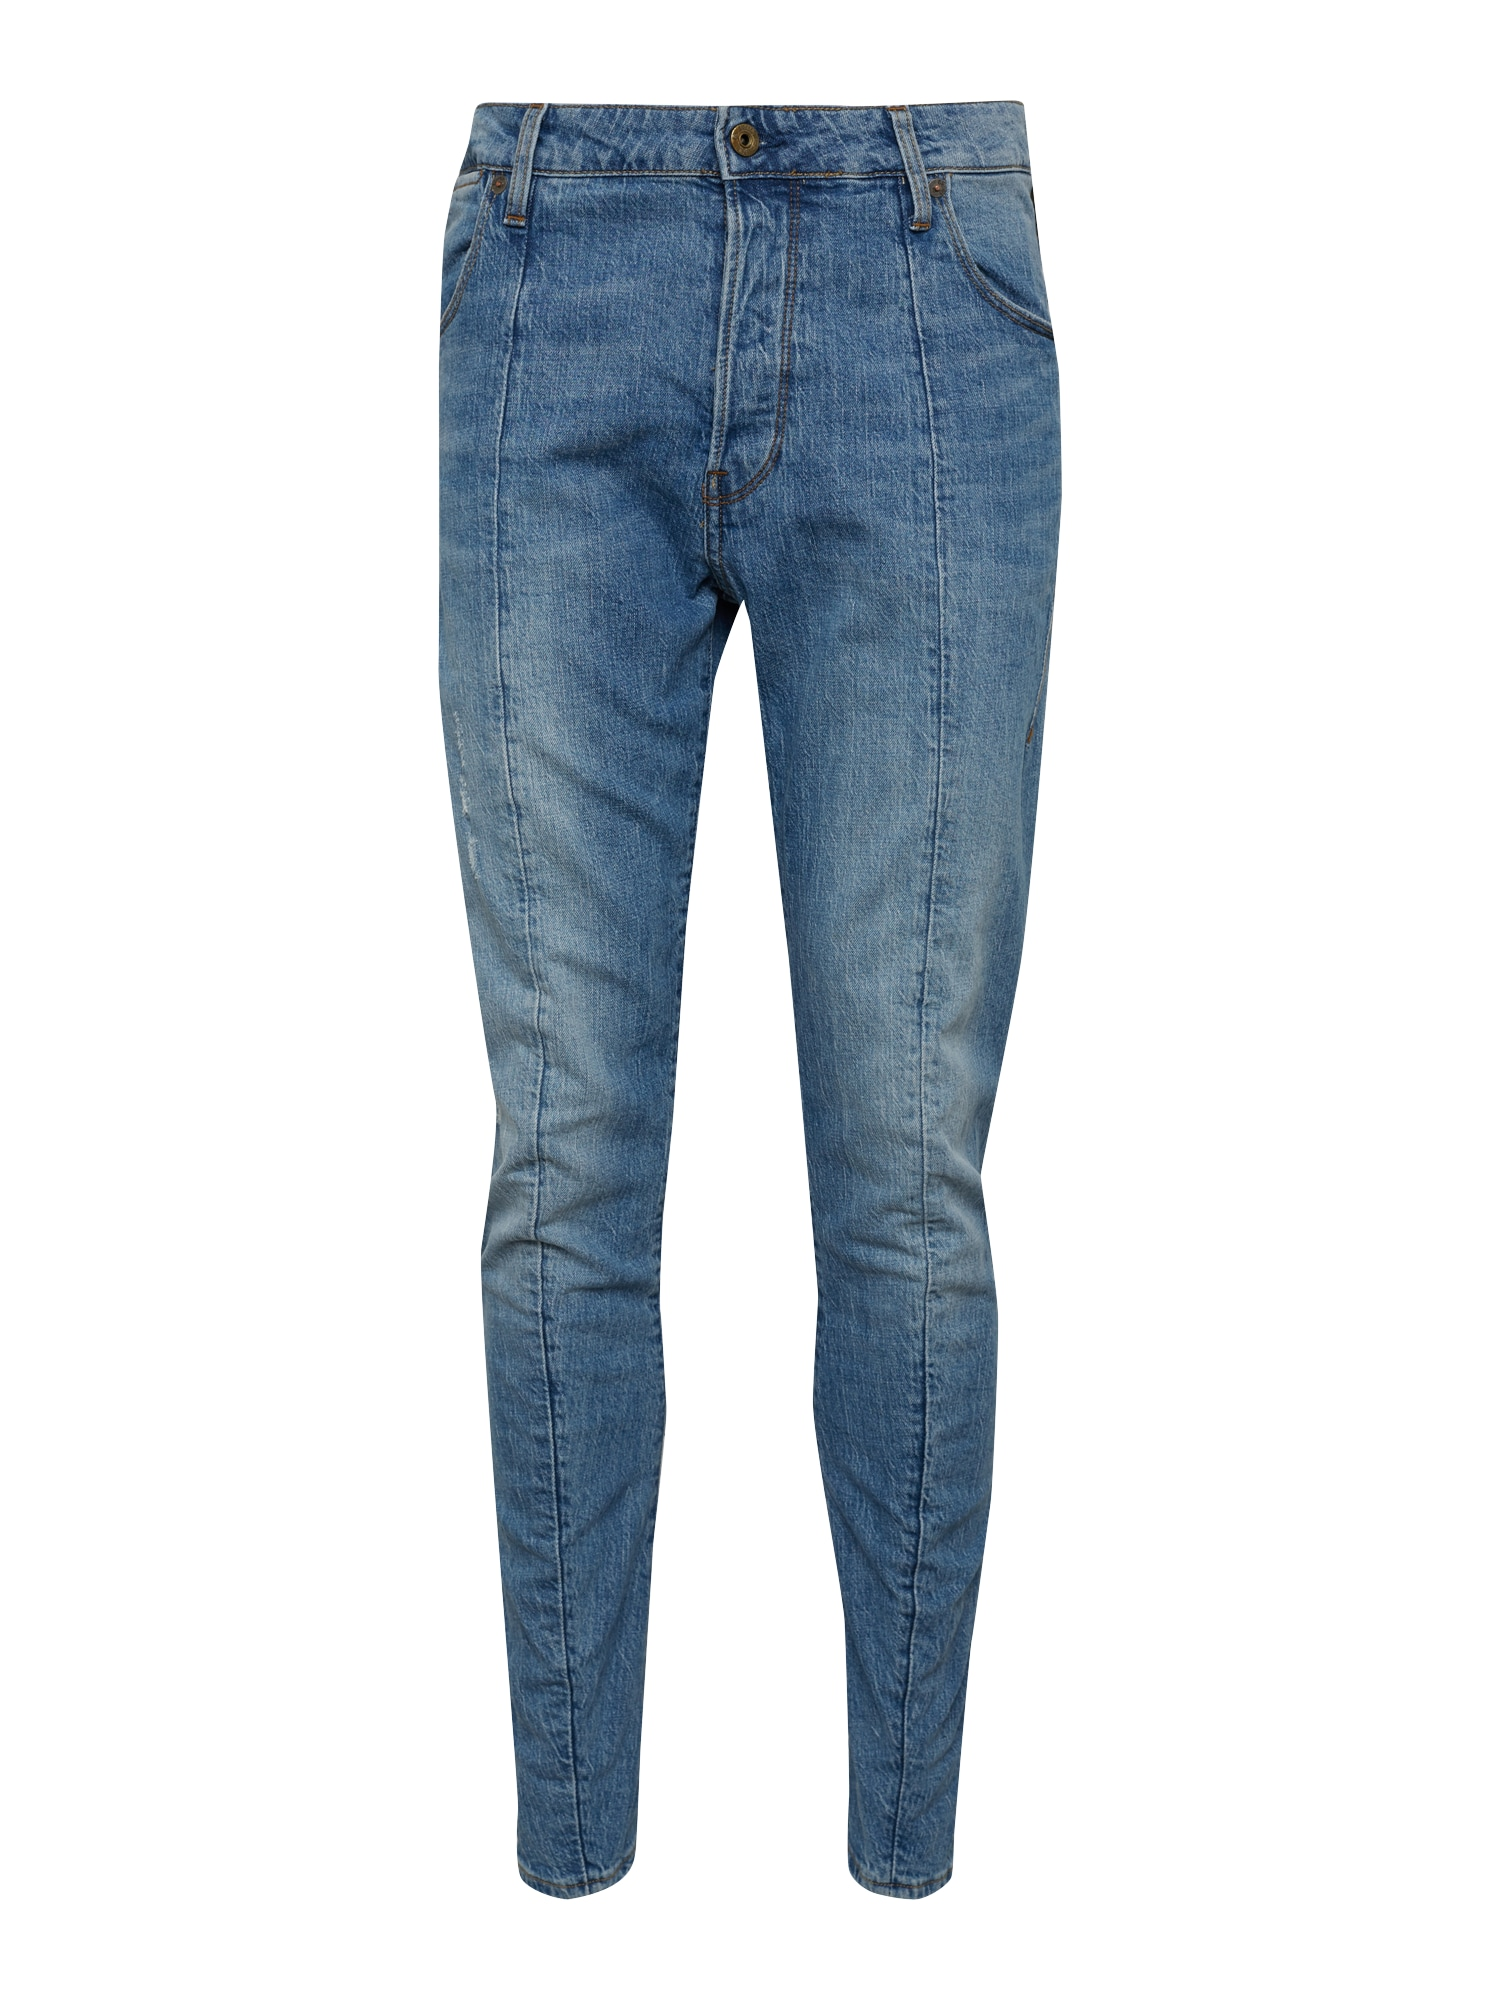 G-STAR RAW Heren Jeans Lanc 3D Straight Tapered blauw denim